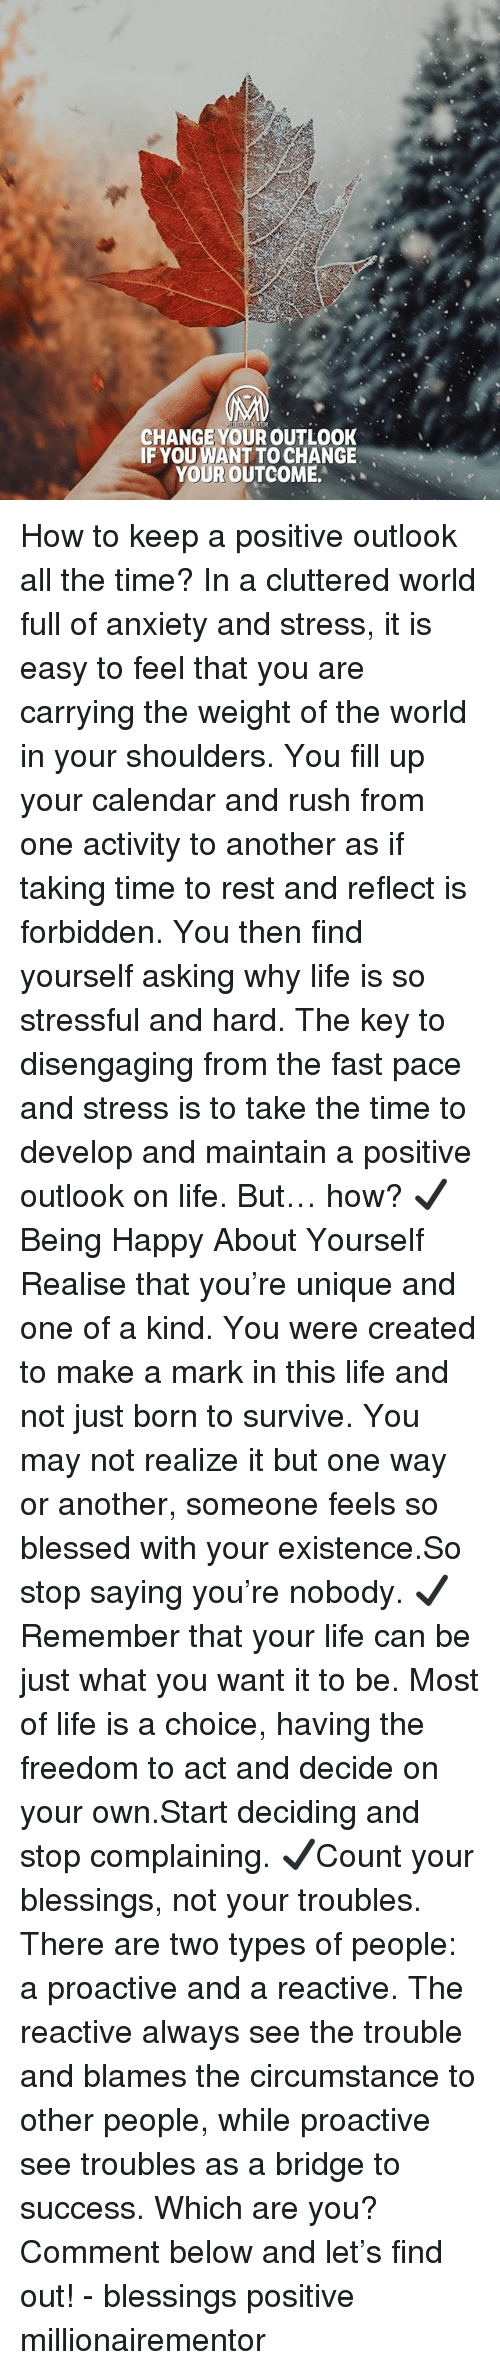 """Blessed, Life, and Memes: CHANGE YOUR OUTLOOK  IF YOU WANT TO CHANGE  YOUR OUTCOME.""""  ' How to keep a positive outlook all the time? In a cluttered world full of anxiety and stress, it is easy to feel that you are carrying the weight of the world in your shoulders. You fill up your calendar and rush from one activity to another as if taking time to rest and reflect is forbidden. You then find yourself asking why life is so stressful and hard. The key to disengaging from the fast pace and stress is to take the time to develop and maintain a positive outlook on life. But… how? ✔️Being Happy About Yourself Realise that you're unique and one of a kind. You were created to make a mark in this life and not just born to survive. You may not realize it but one way or another, someone feels so blessed with your existence.So stop saying you're nobody. ✔️Remember that your life can be just what you want it to be. Most of life is a choice, having the freedom to act and decide on your own.Start deciding and stop complaining. ✔️Count your blessings, not your troubles. There are two types of people: a proactive and a reactive. The reactive always see the trouble and blames the circumstance to other people, while proactive see troubles as a bridge to success. Which are you? Comment below and let's find out! - blessings positive millionairementor"""